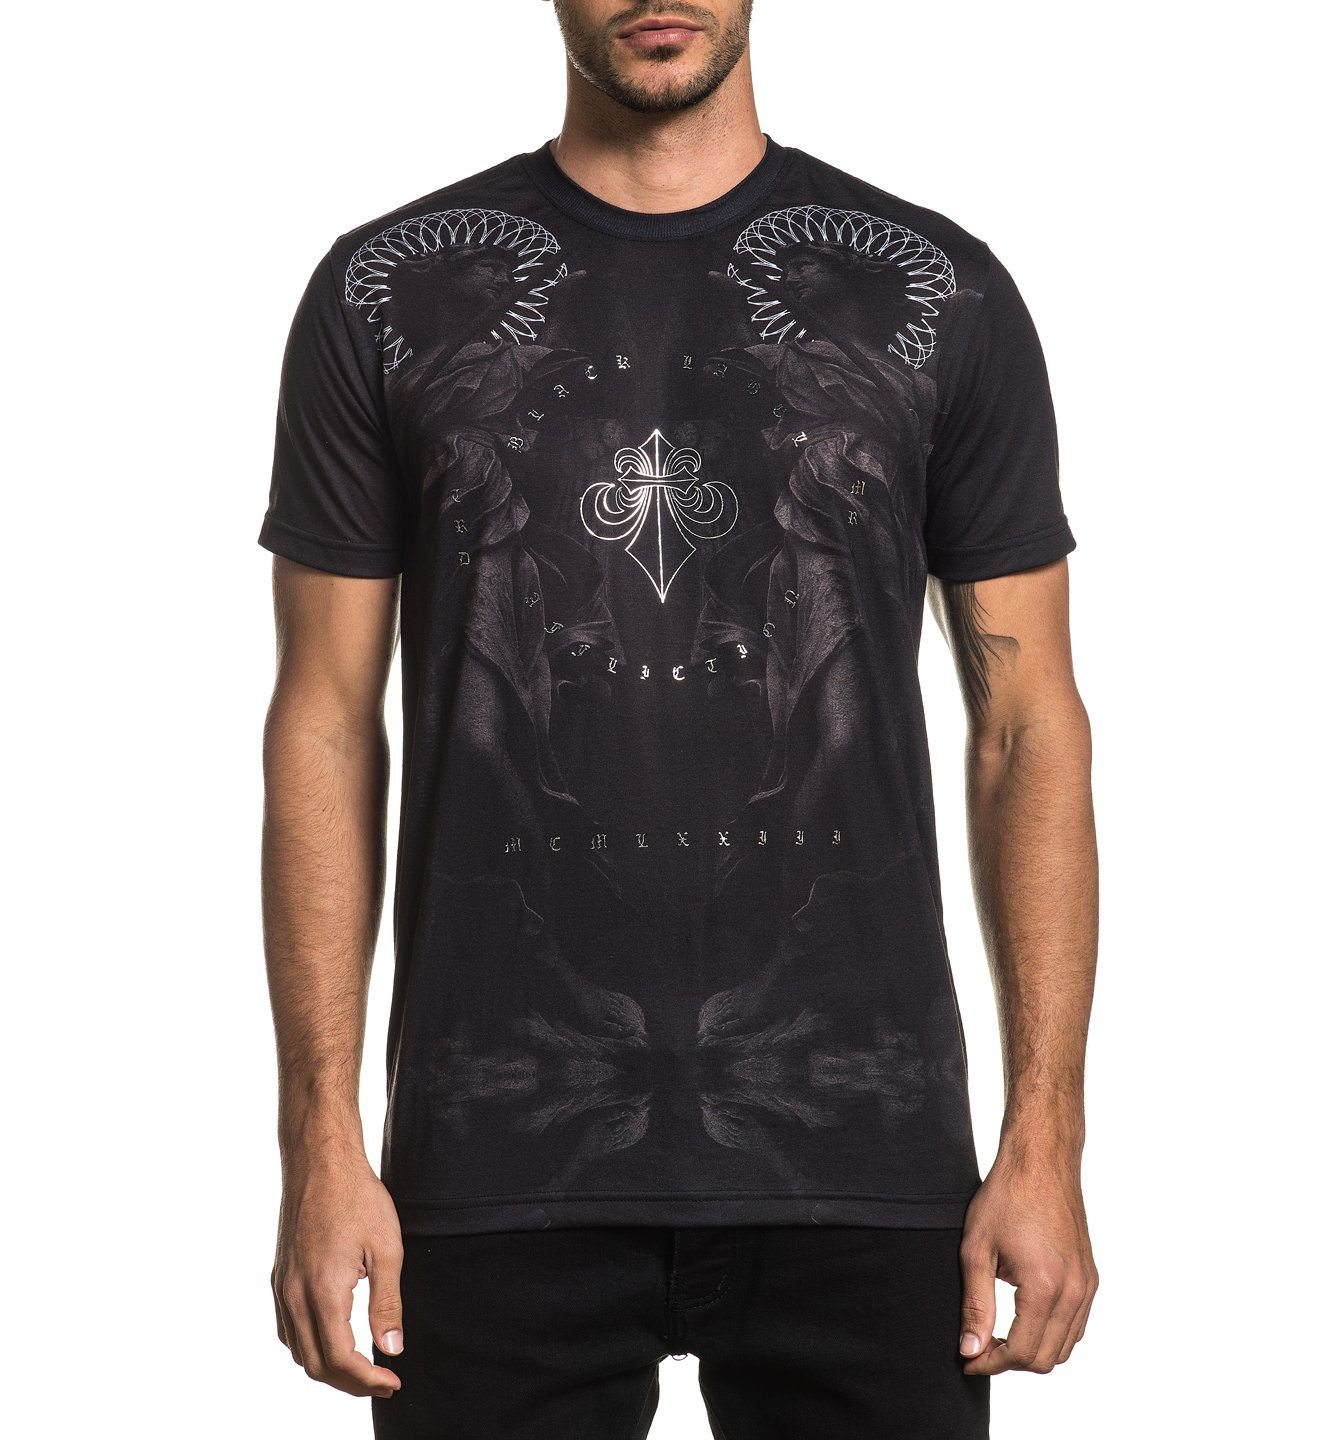 Angel - Mens Short Sleeve Tees - Affliction Clothing